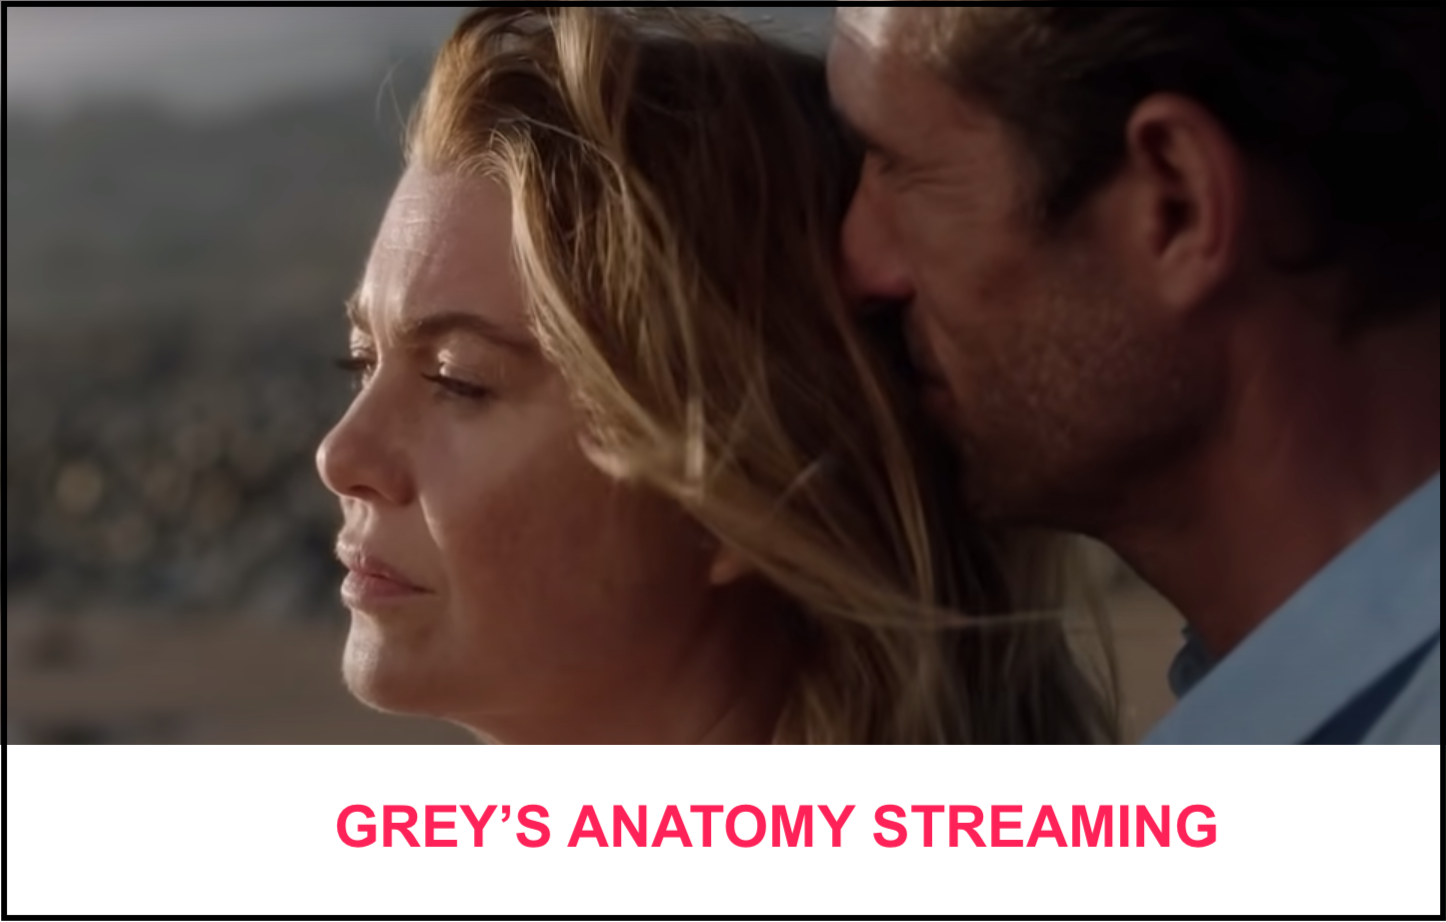 grey's anatomy in streaming